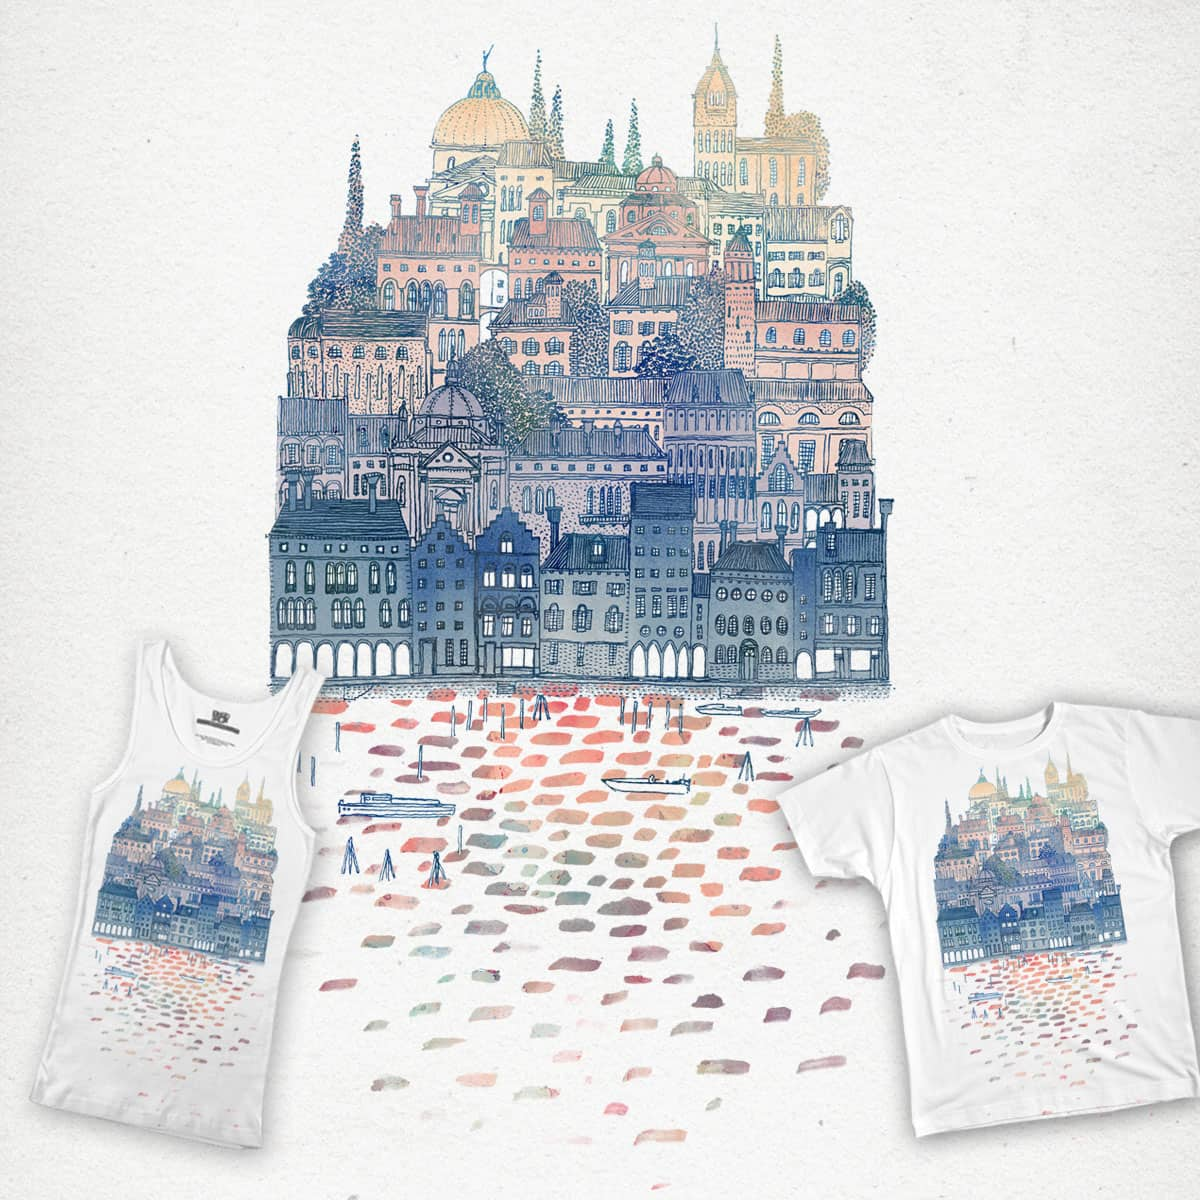 Serenissima by Fleck on Threadless